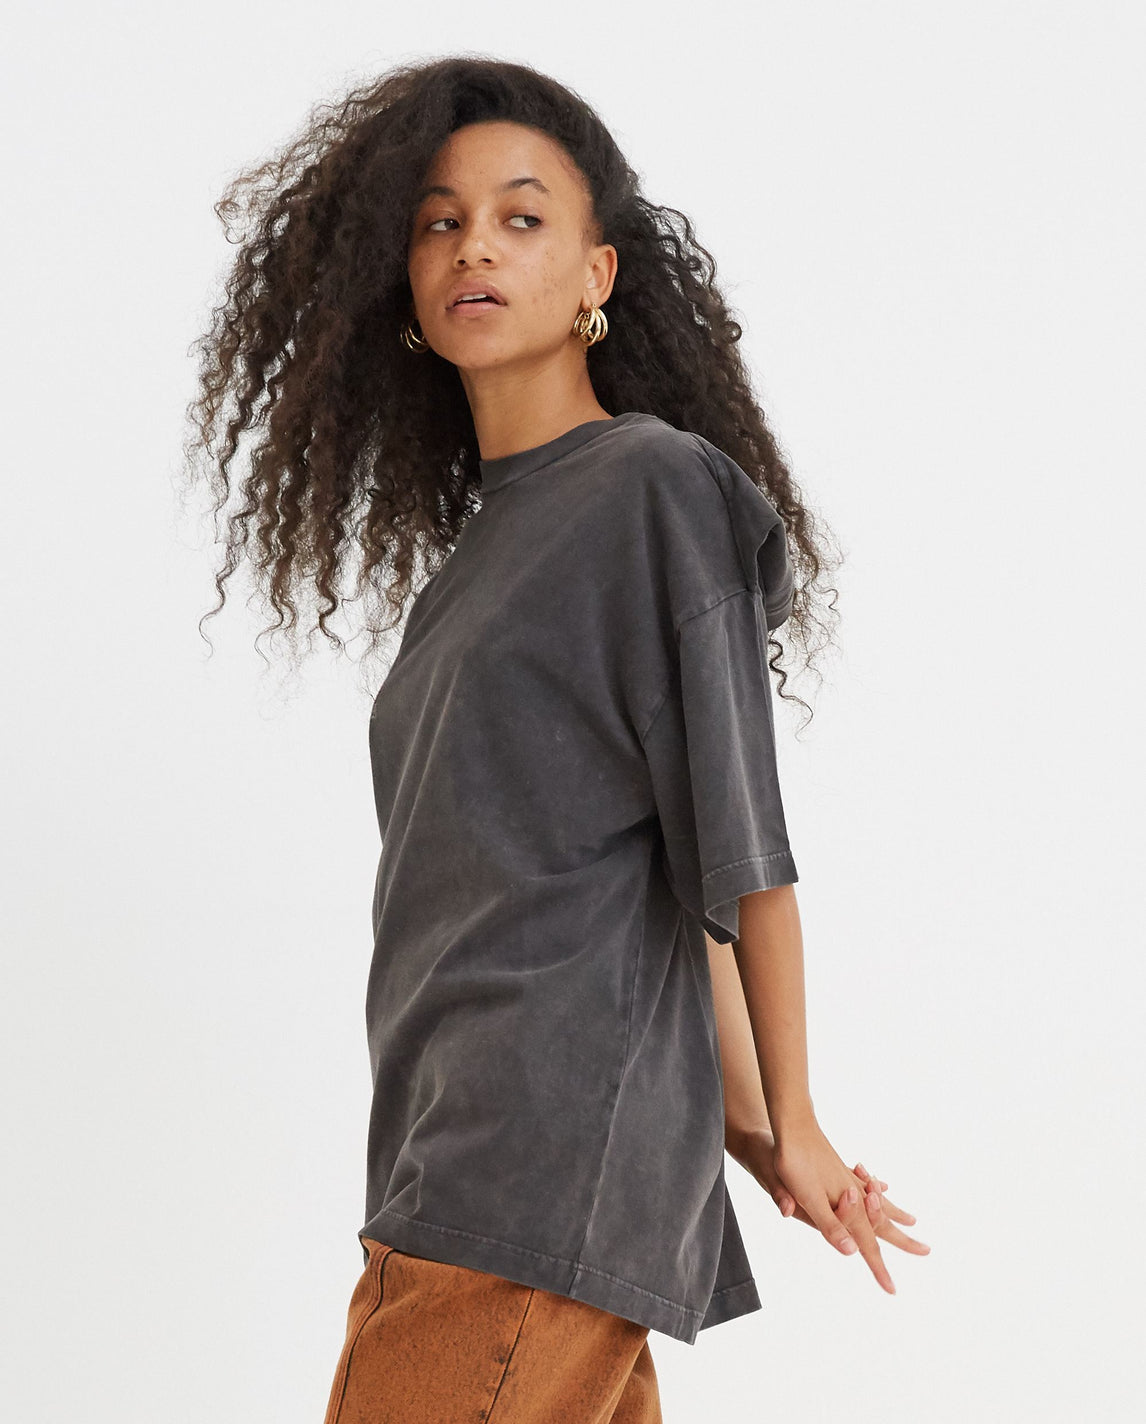 Rose Clipped Shoulder T-Shirt - Grey WOMENS Y/PROJECT